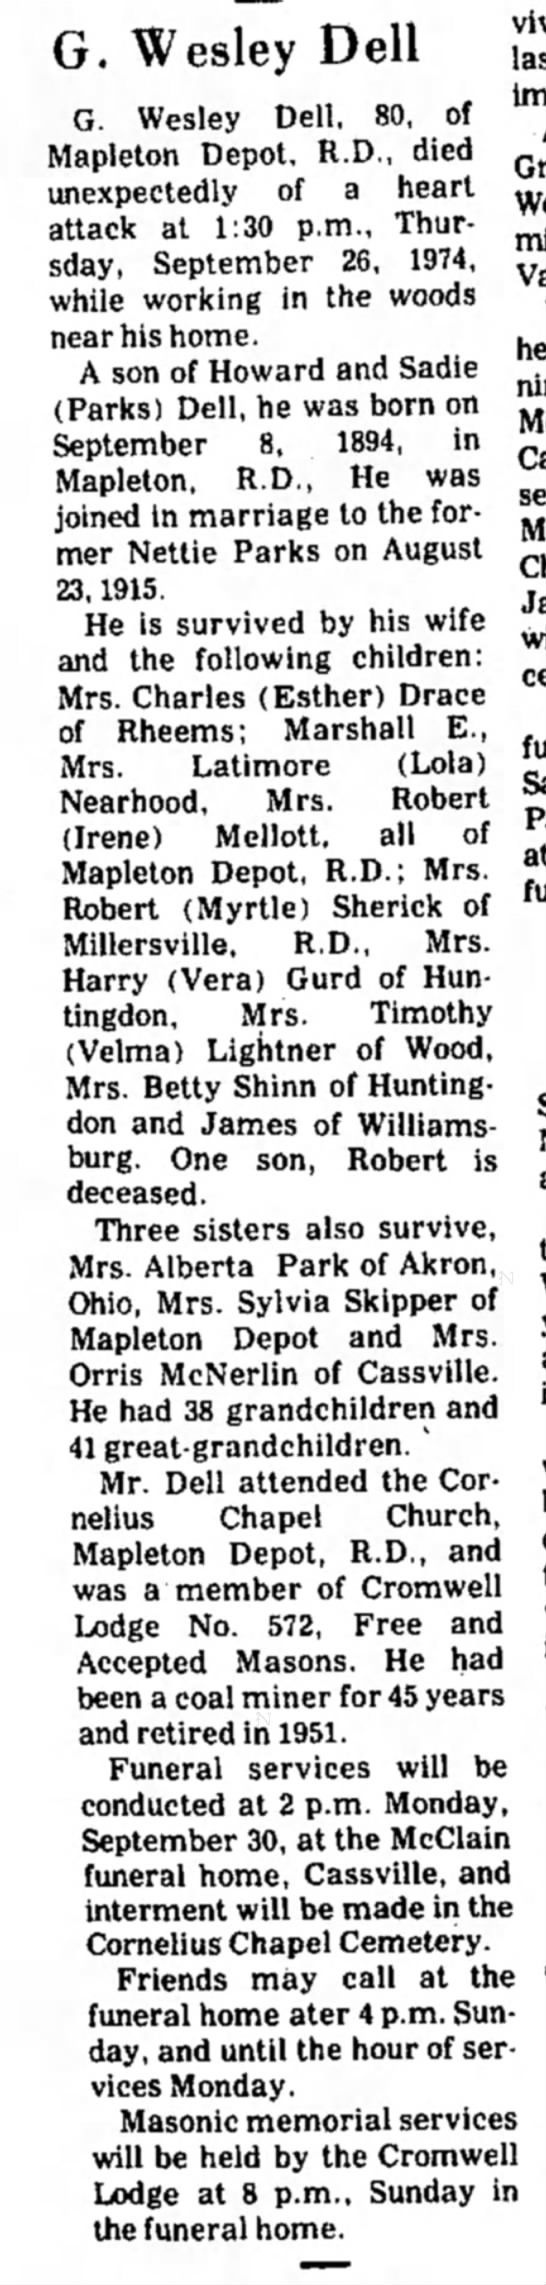 George Wesley Dell-obit-TDN-p.2-27 Sep 1974